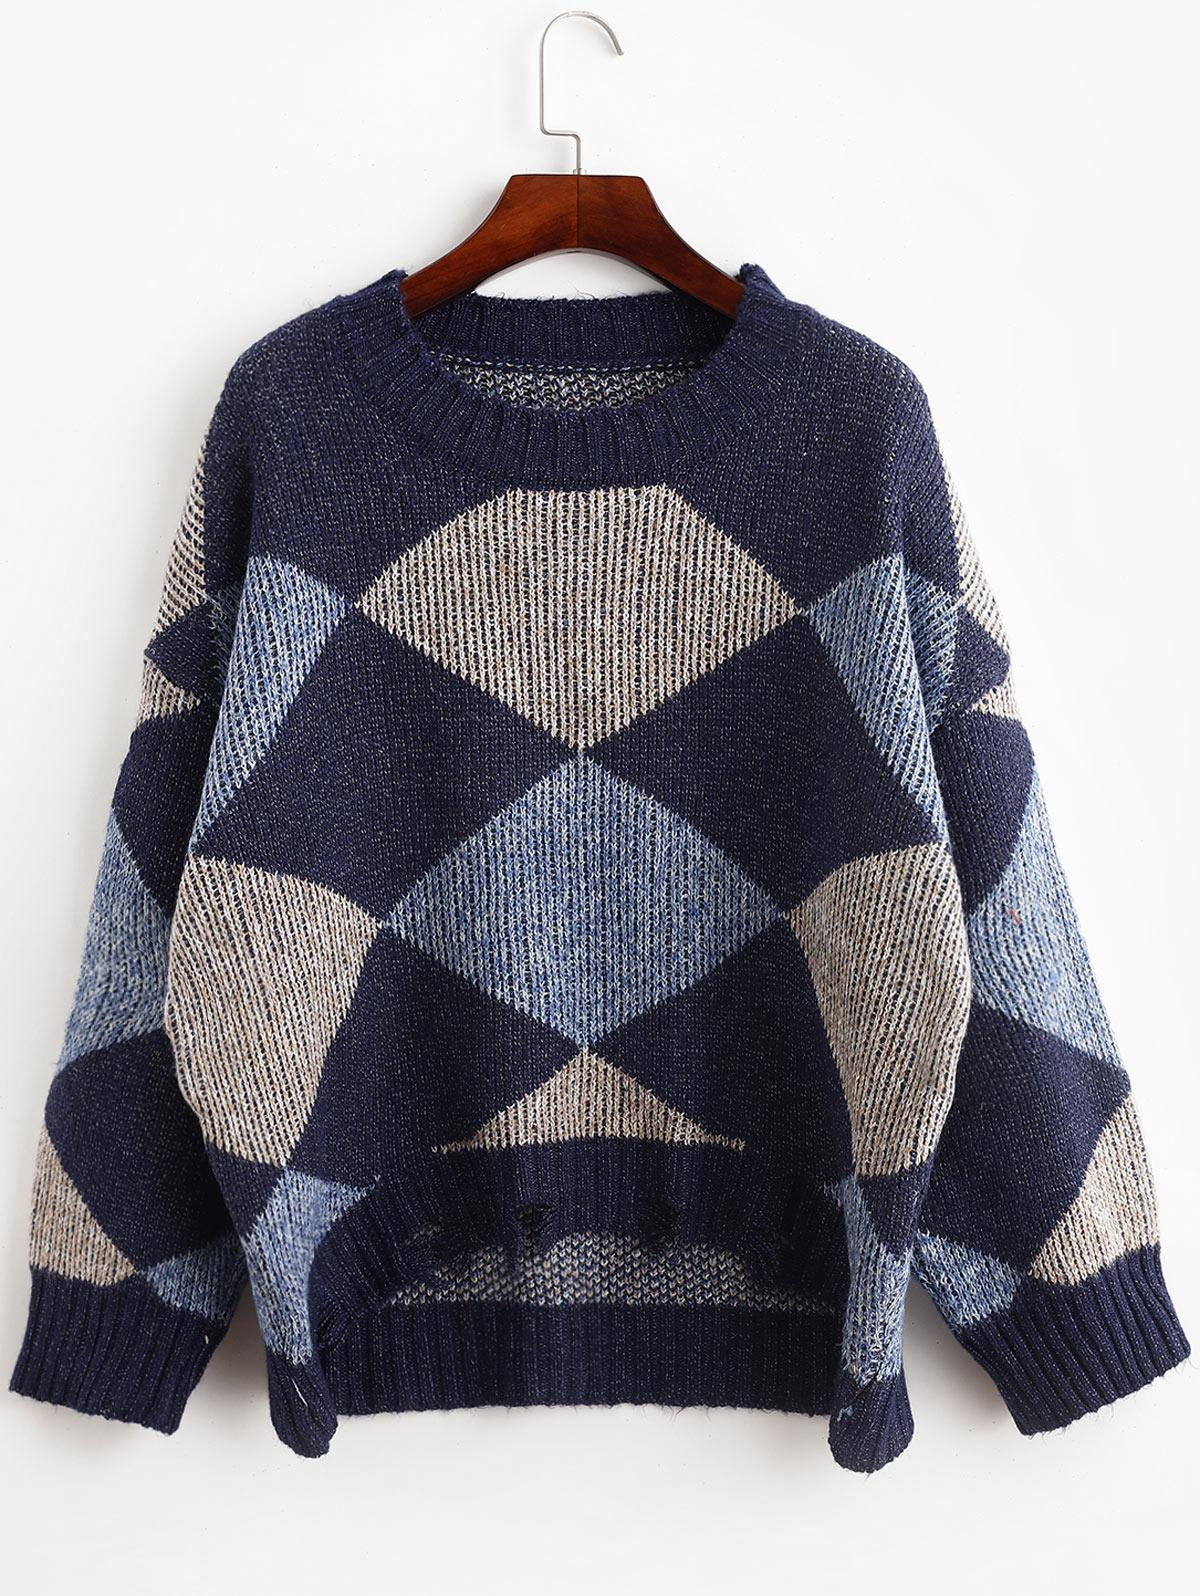 Drop Shoulder Frayed Geometric Graphic Sweater